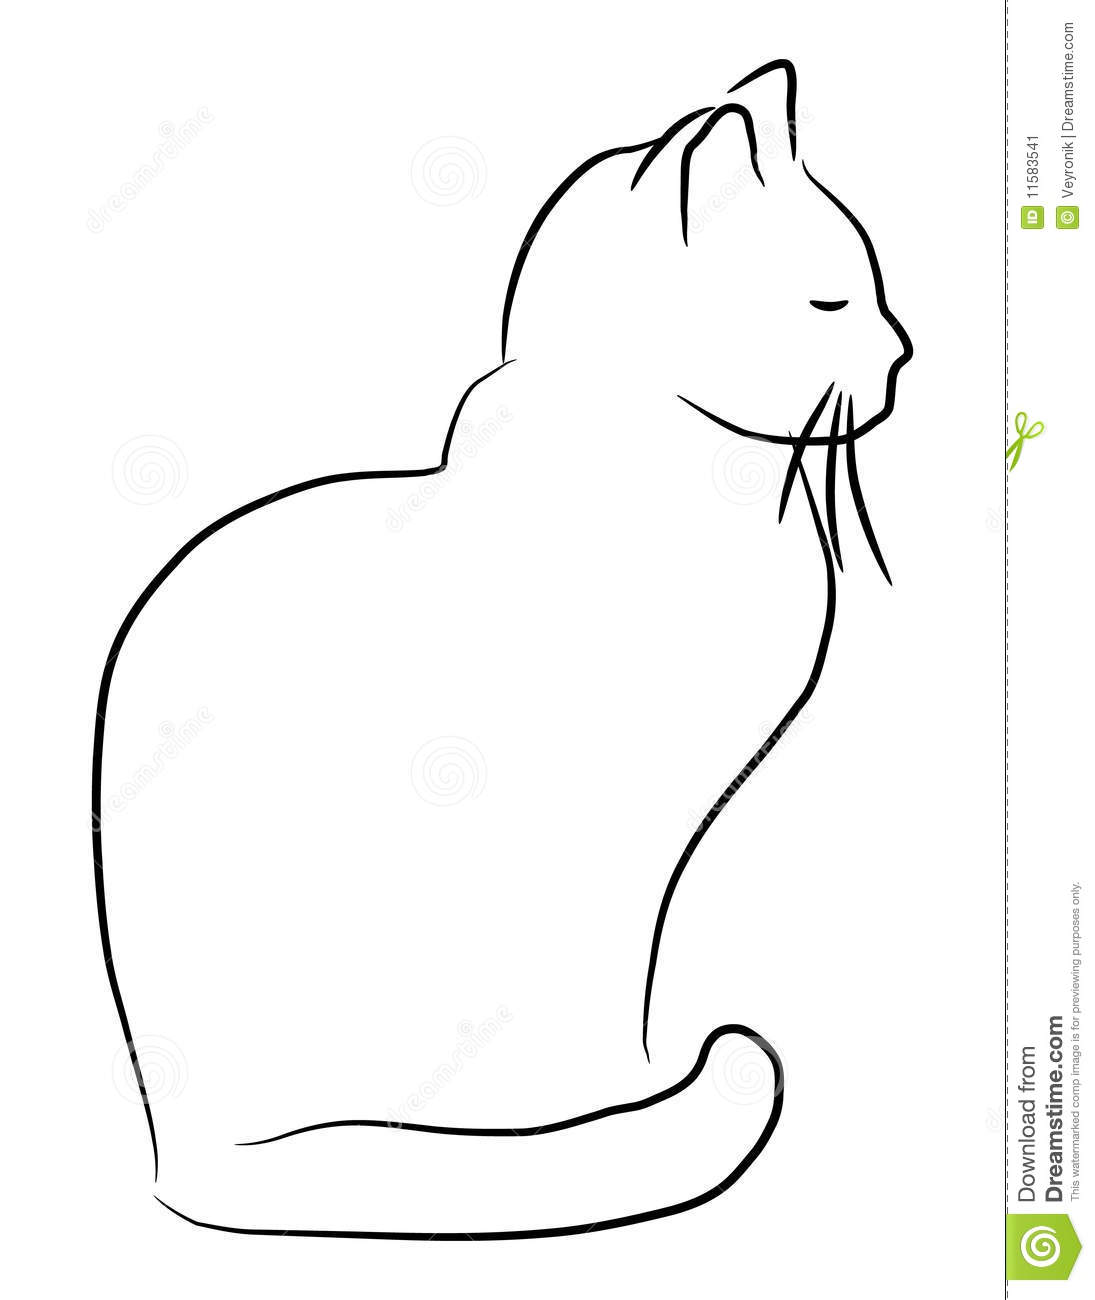 Vector hand drawn style illustration of a cartoon cat.